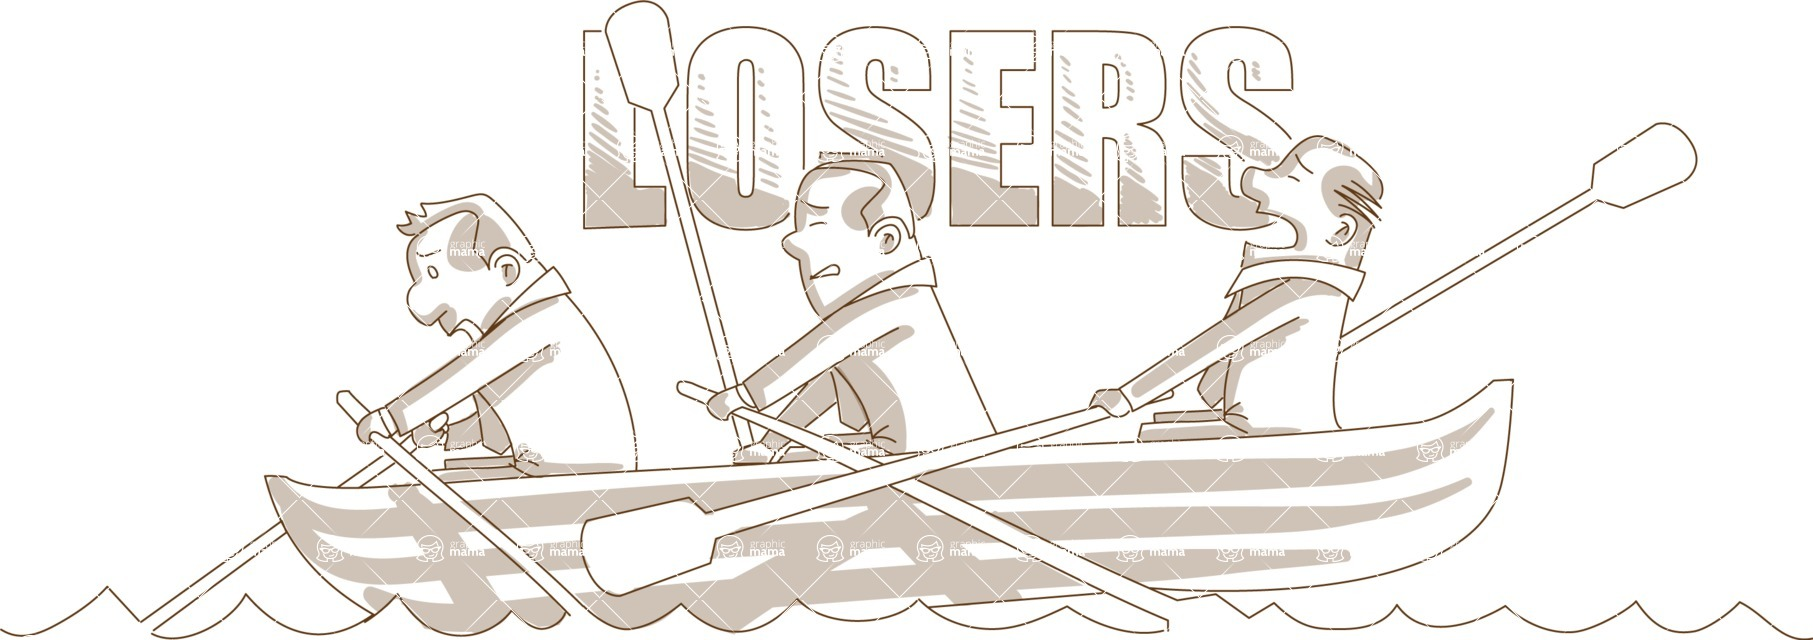 Business vector characters illustrated in the popular outline design trend - a rich collection from GraphicMama - Monochrome Losers Businessmen on Boat